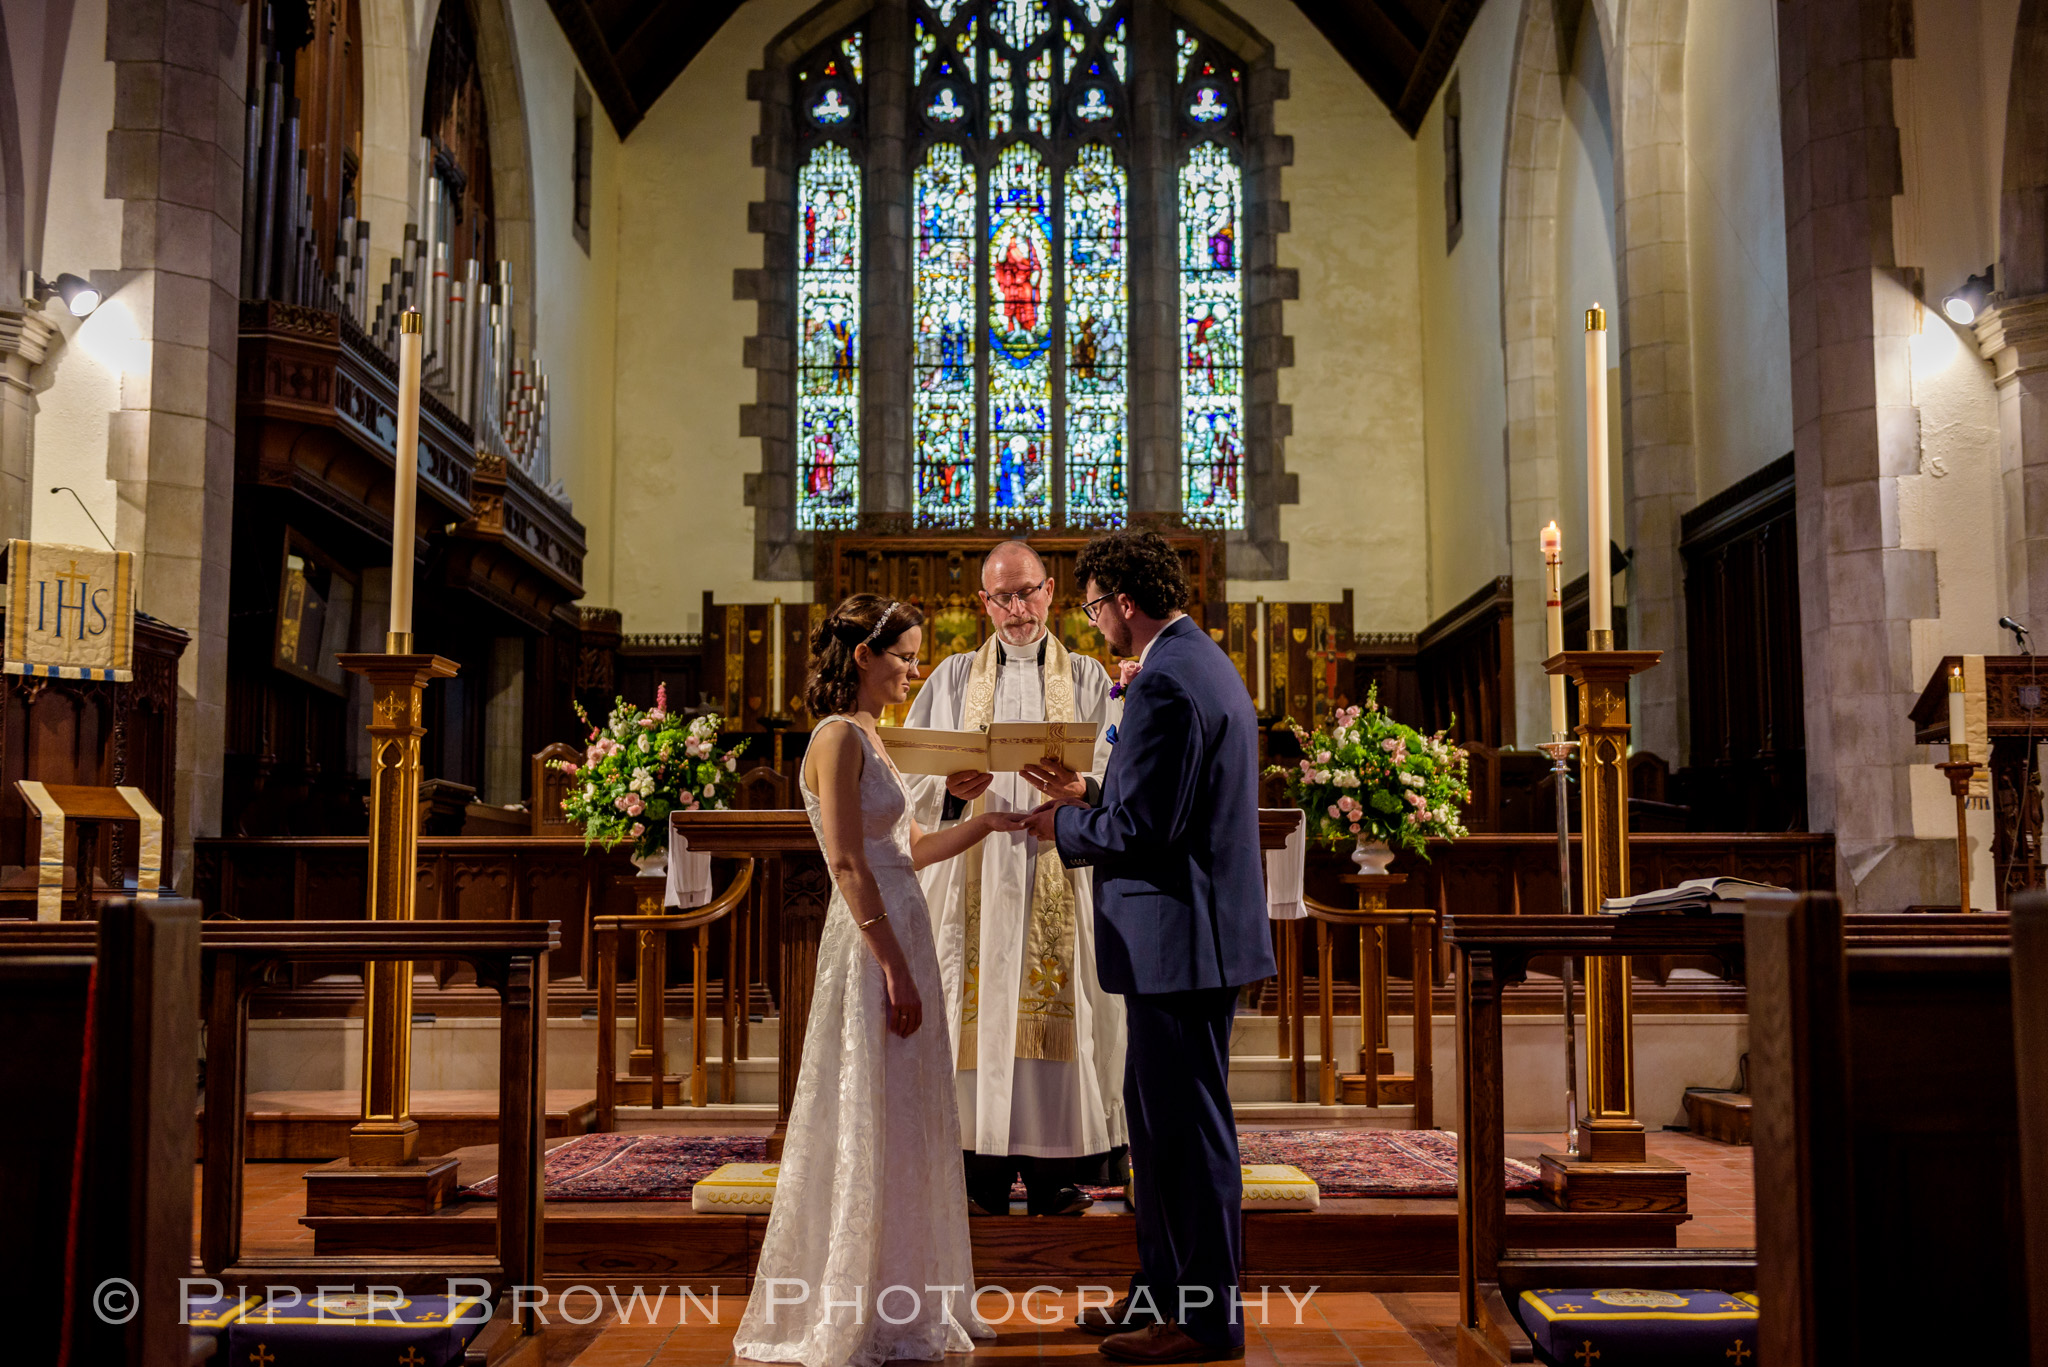 Slim brunette bride in a white embroidered gown exchanging rings with a Curley haired brunette groom in a navy suit in front of a priest in a church with ornate stain-glass window behind them.